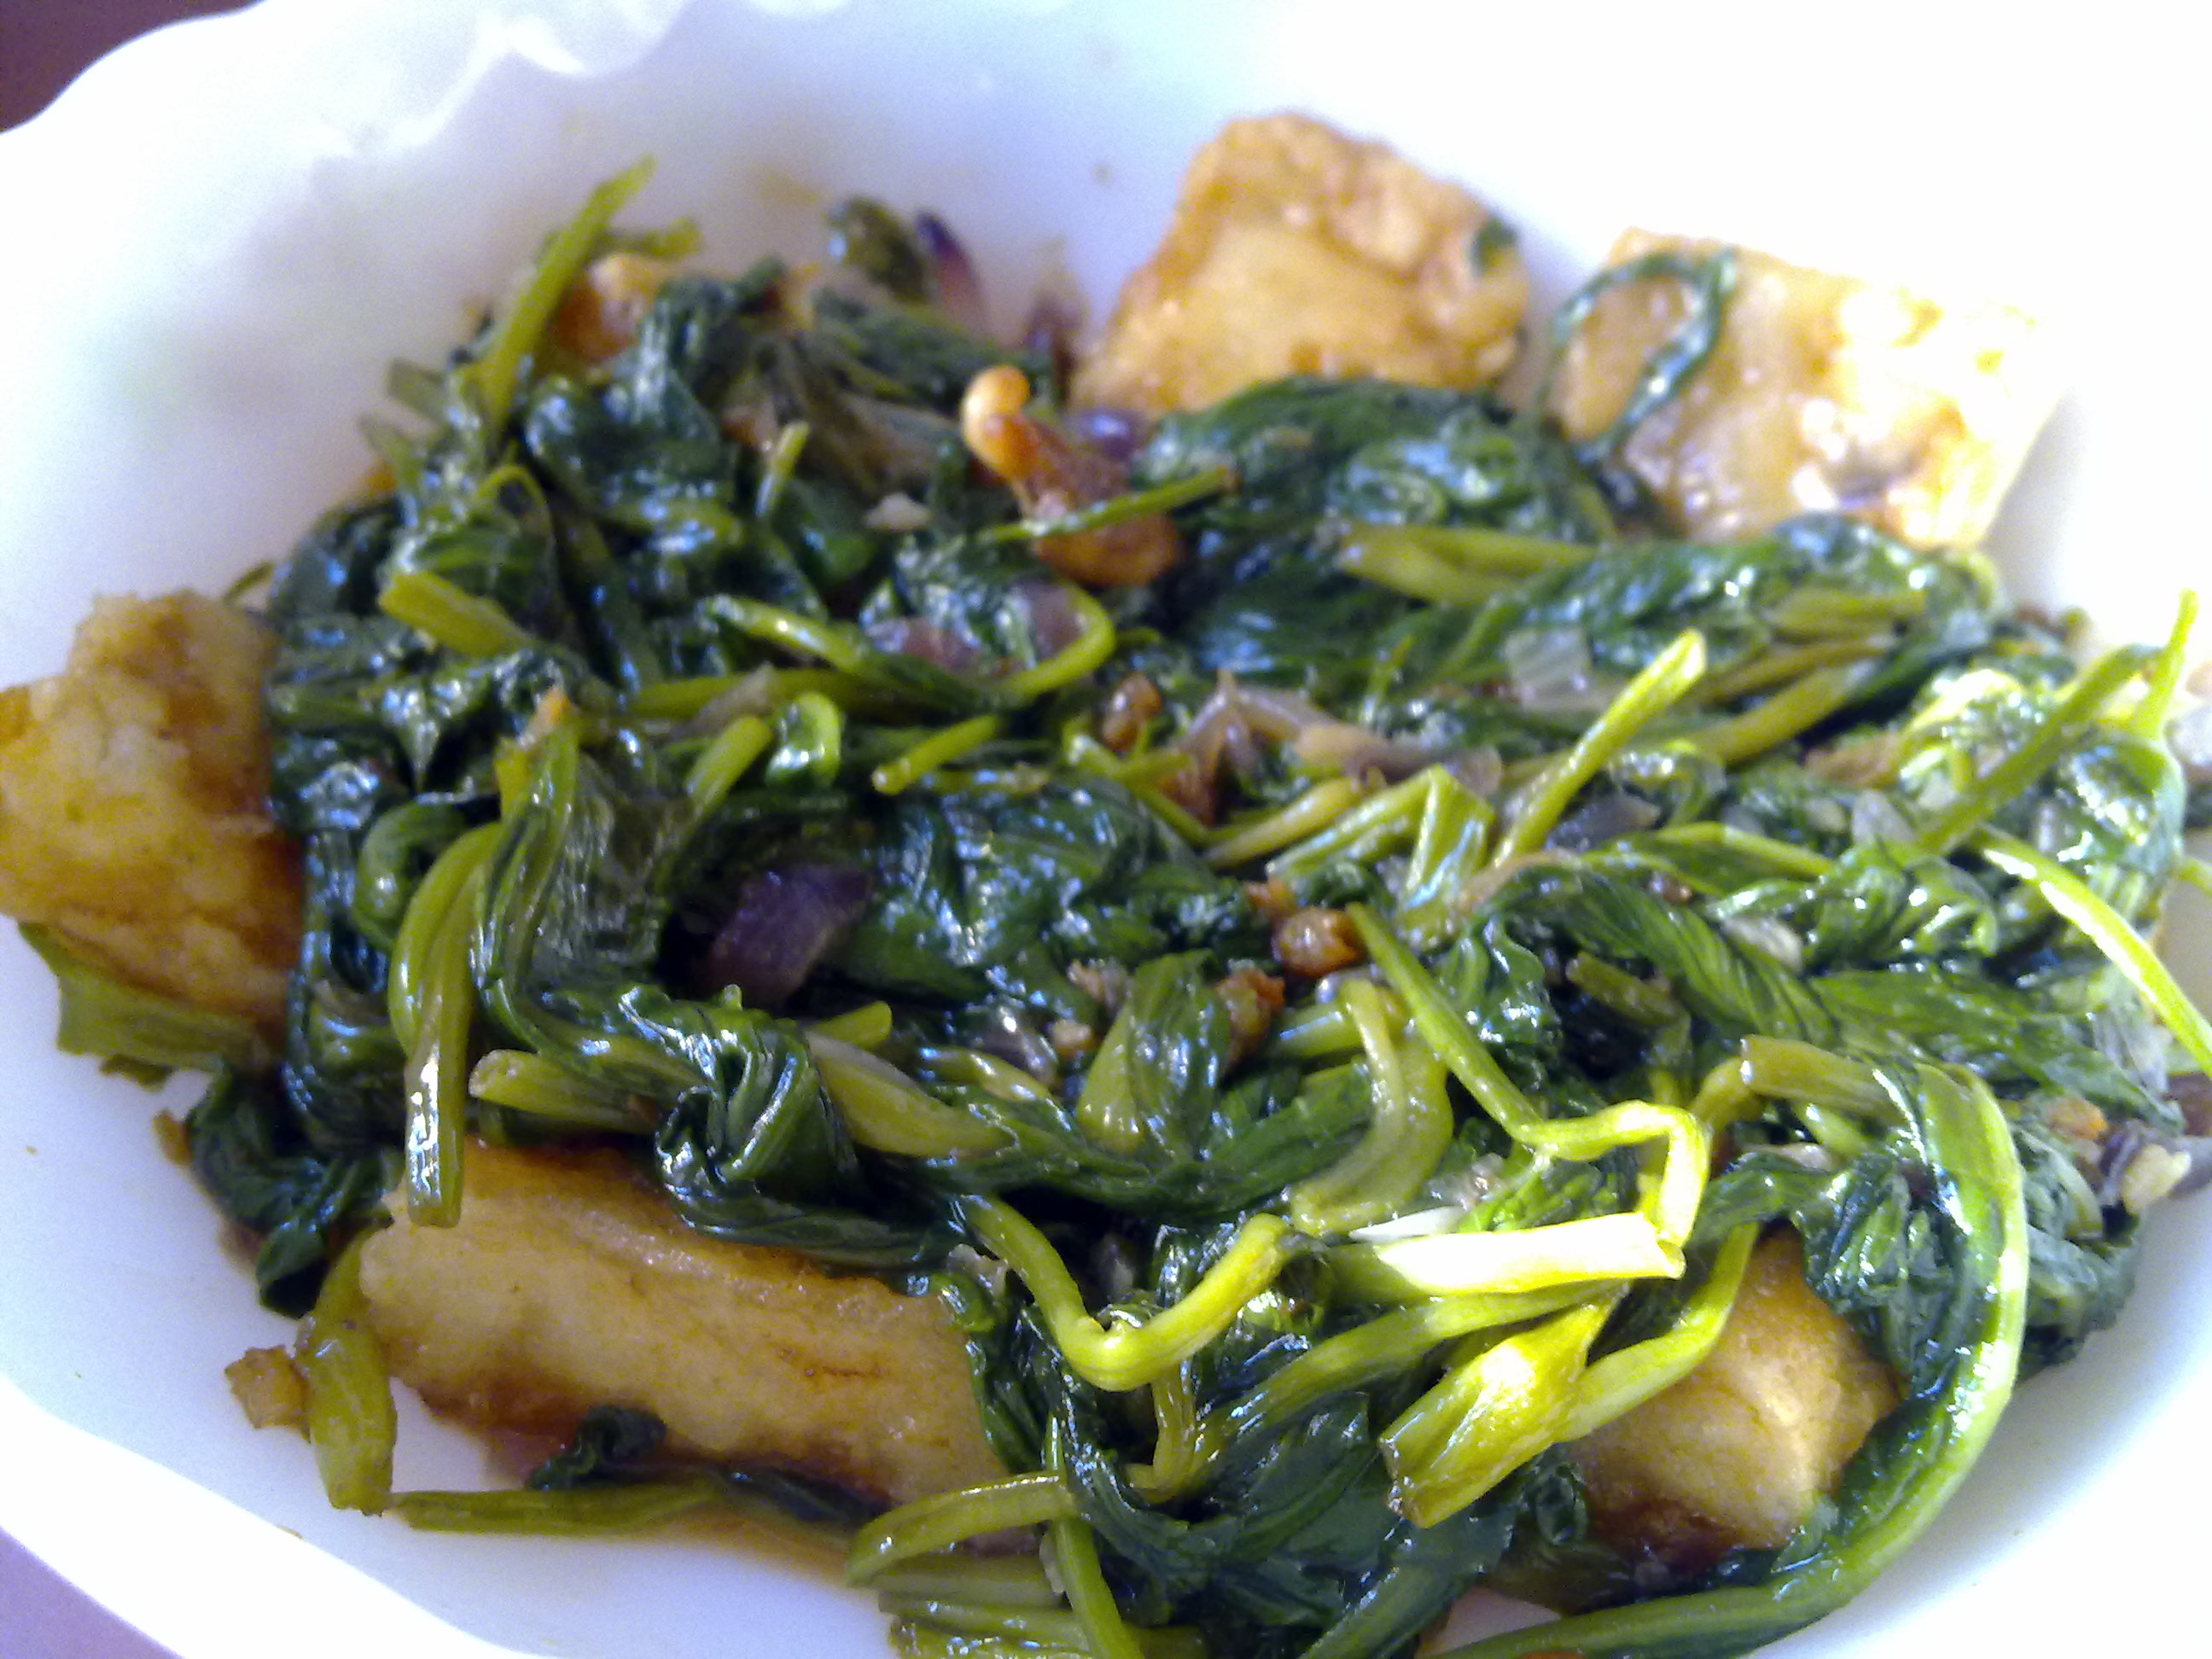 Stir Fry Water Spinach with Firm Tofu